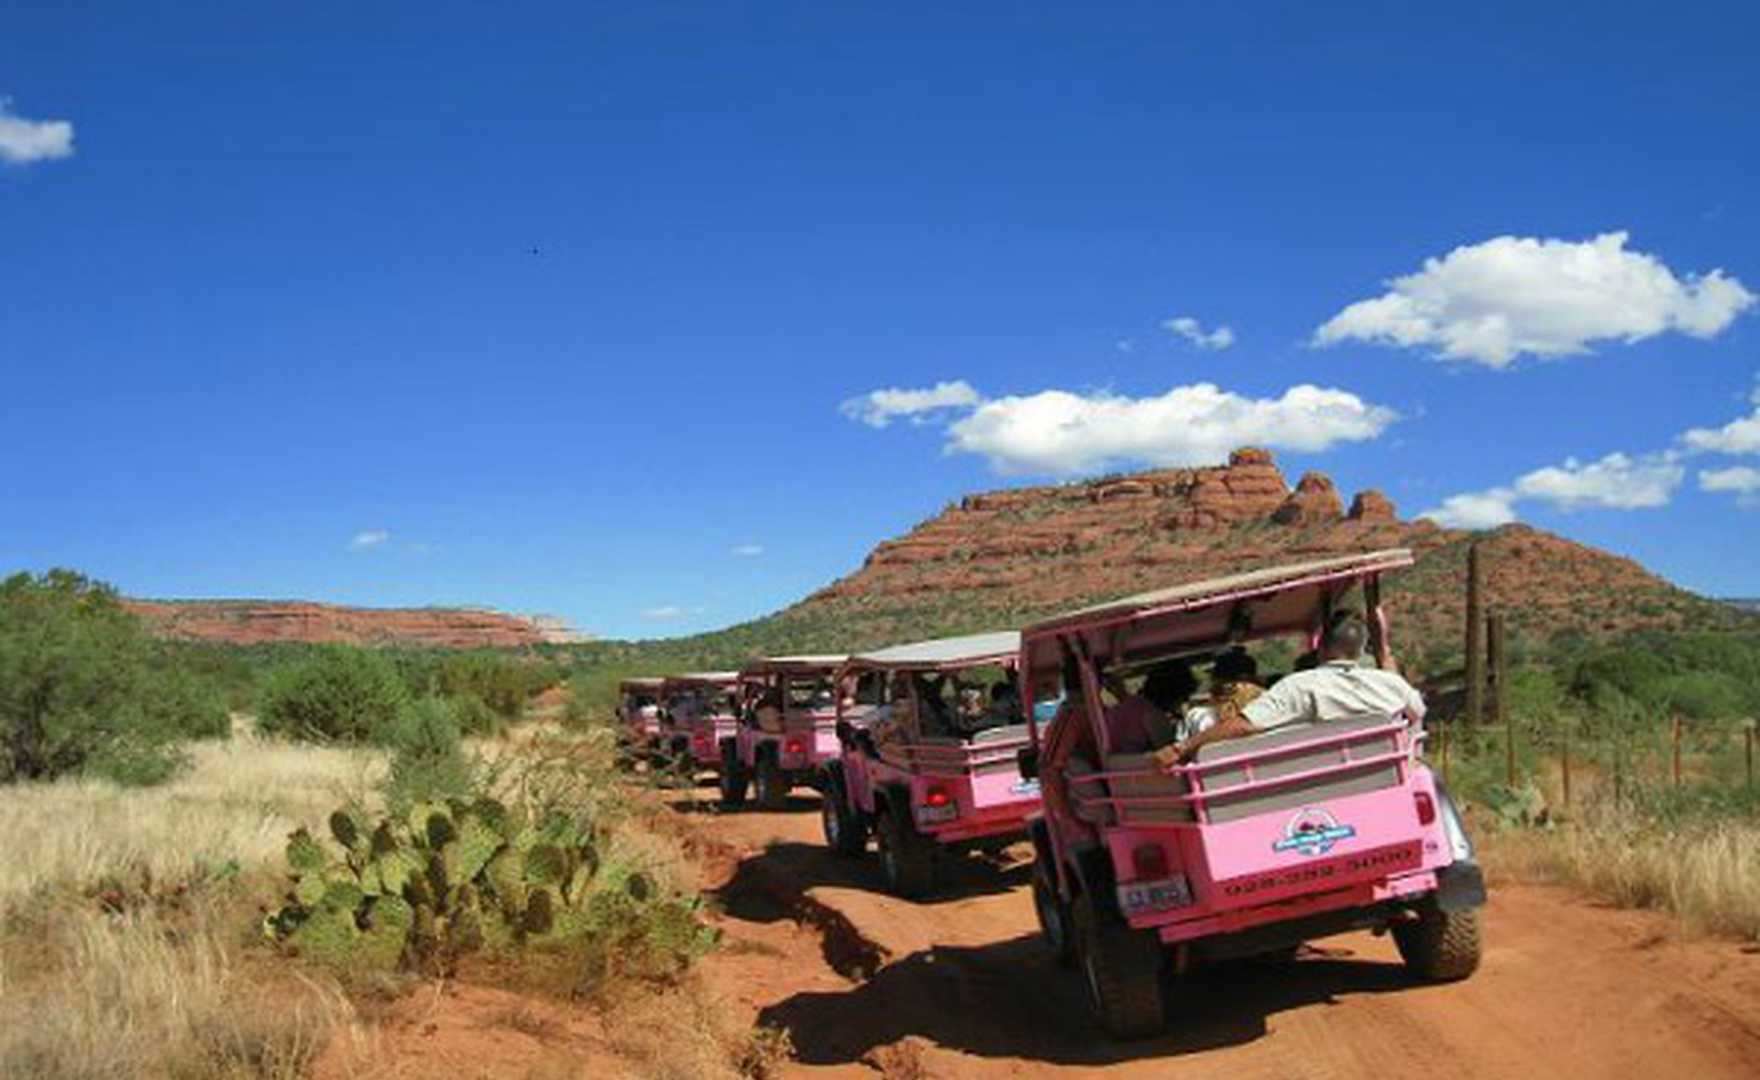 Pink Jeeps ROK: Habit no. 9: Choosing to be Kind